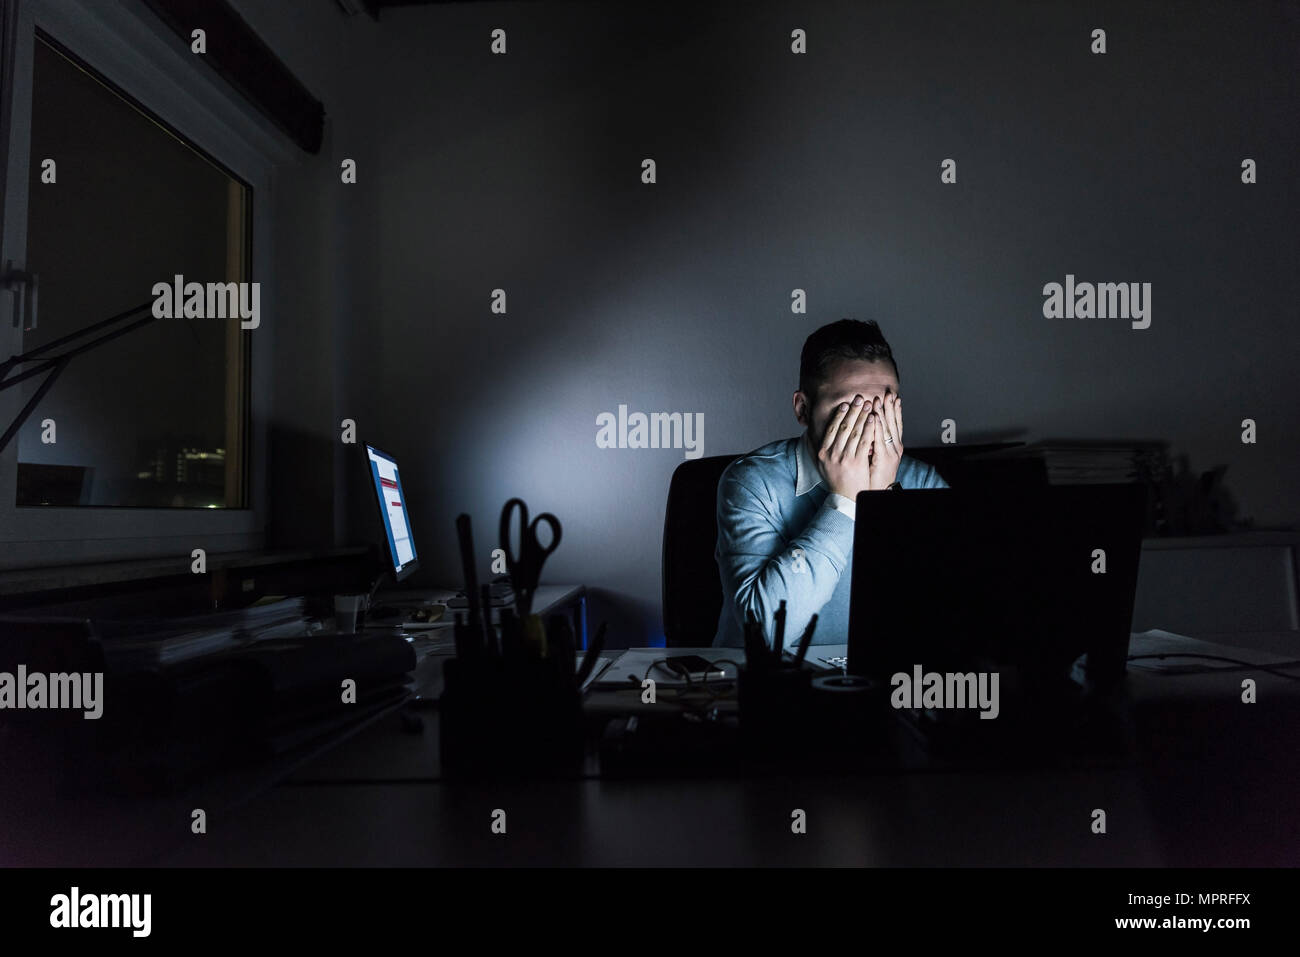 Épuisé businessman sitting at desk in office at night Photo Stock